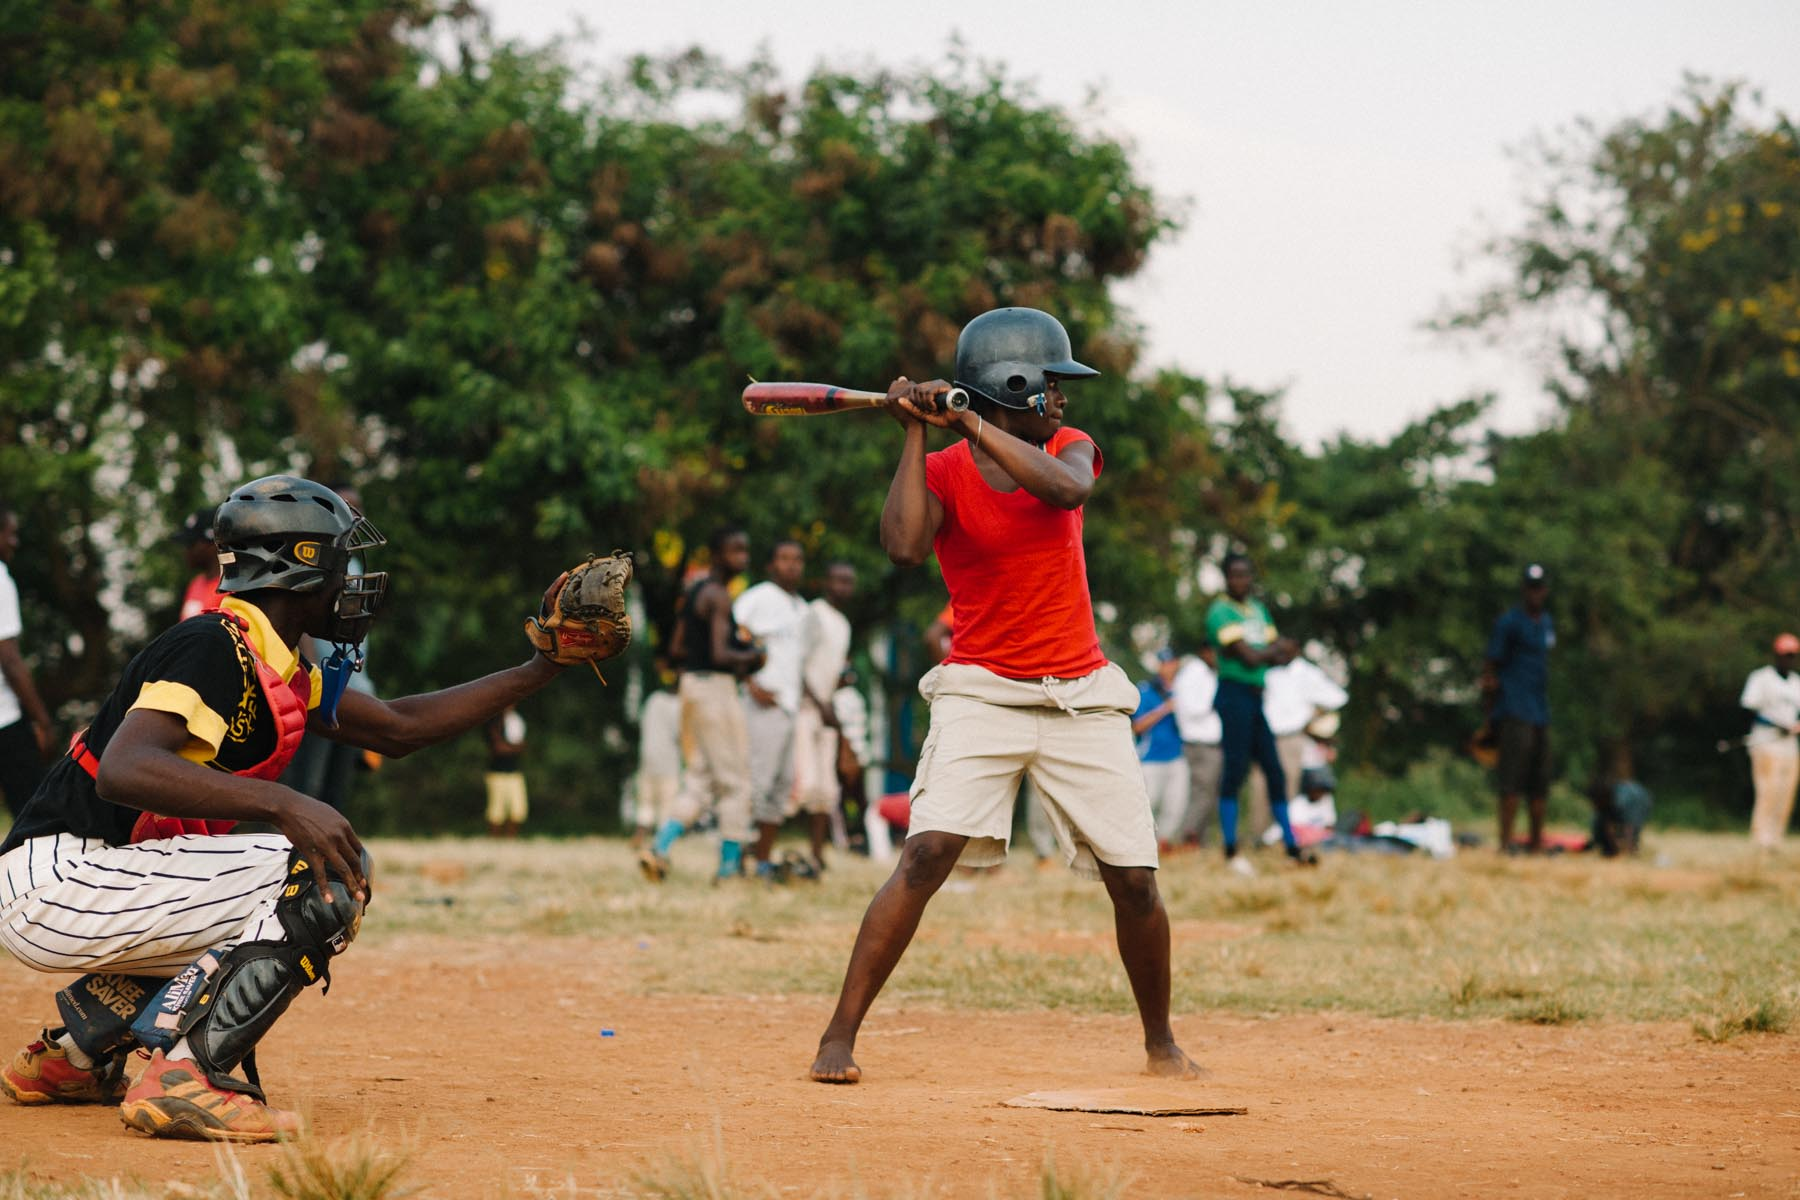 HKP-UgandaBaseball-Day3-0012.jpg